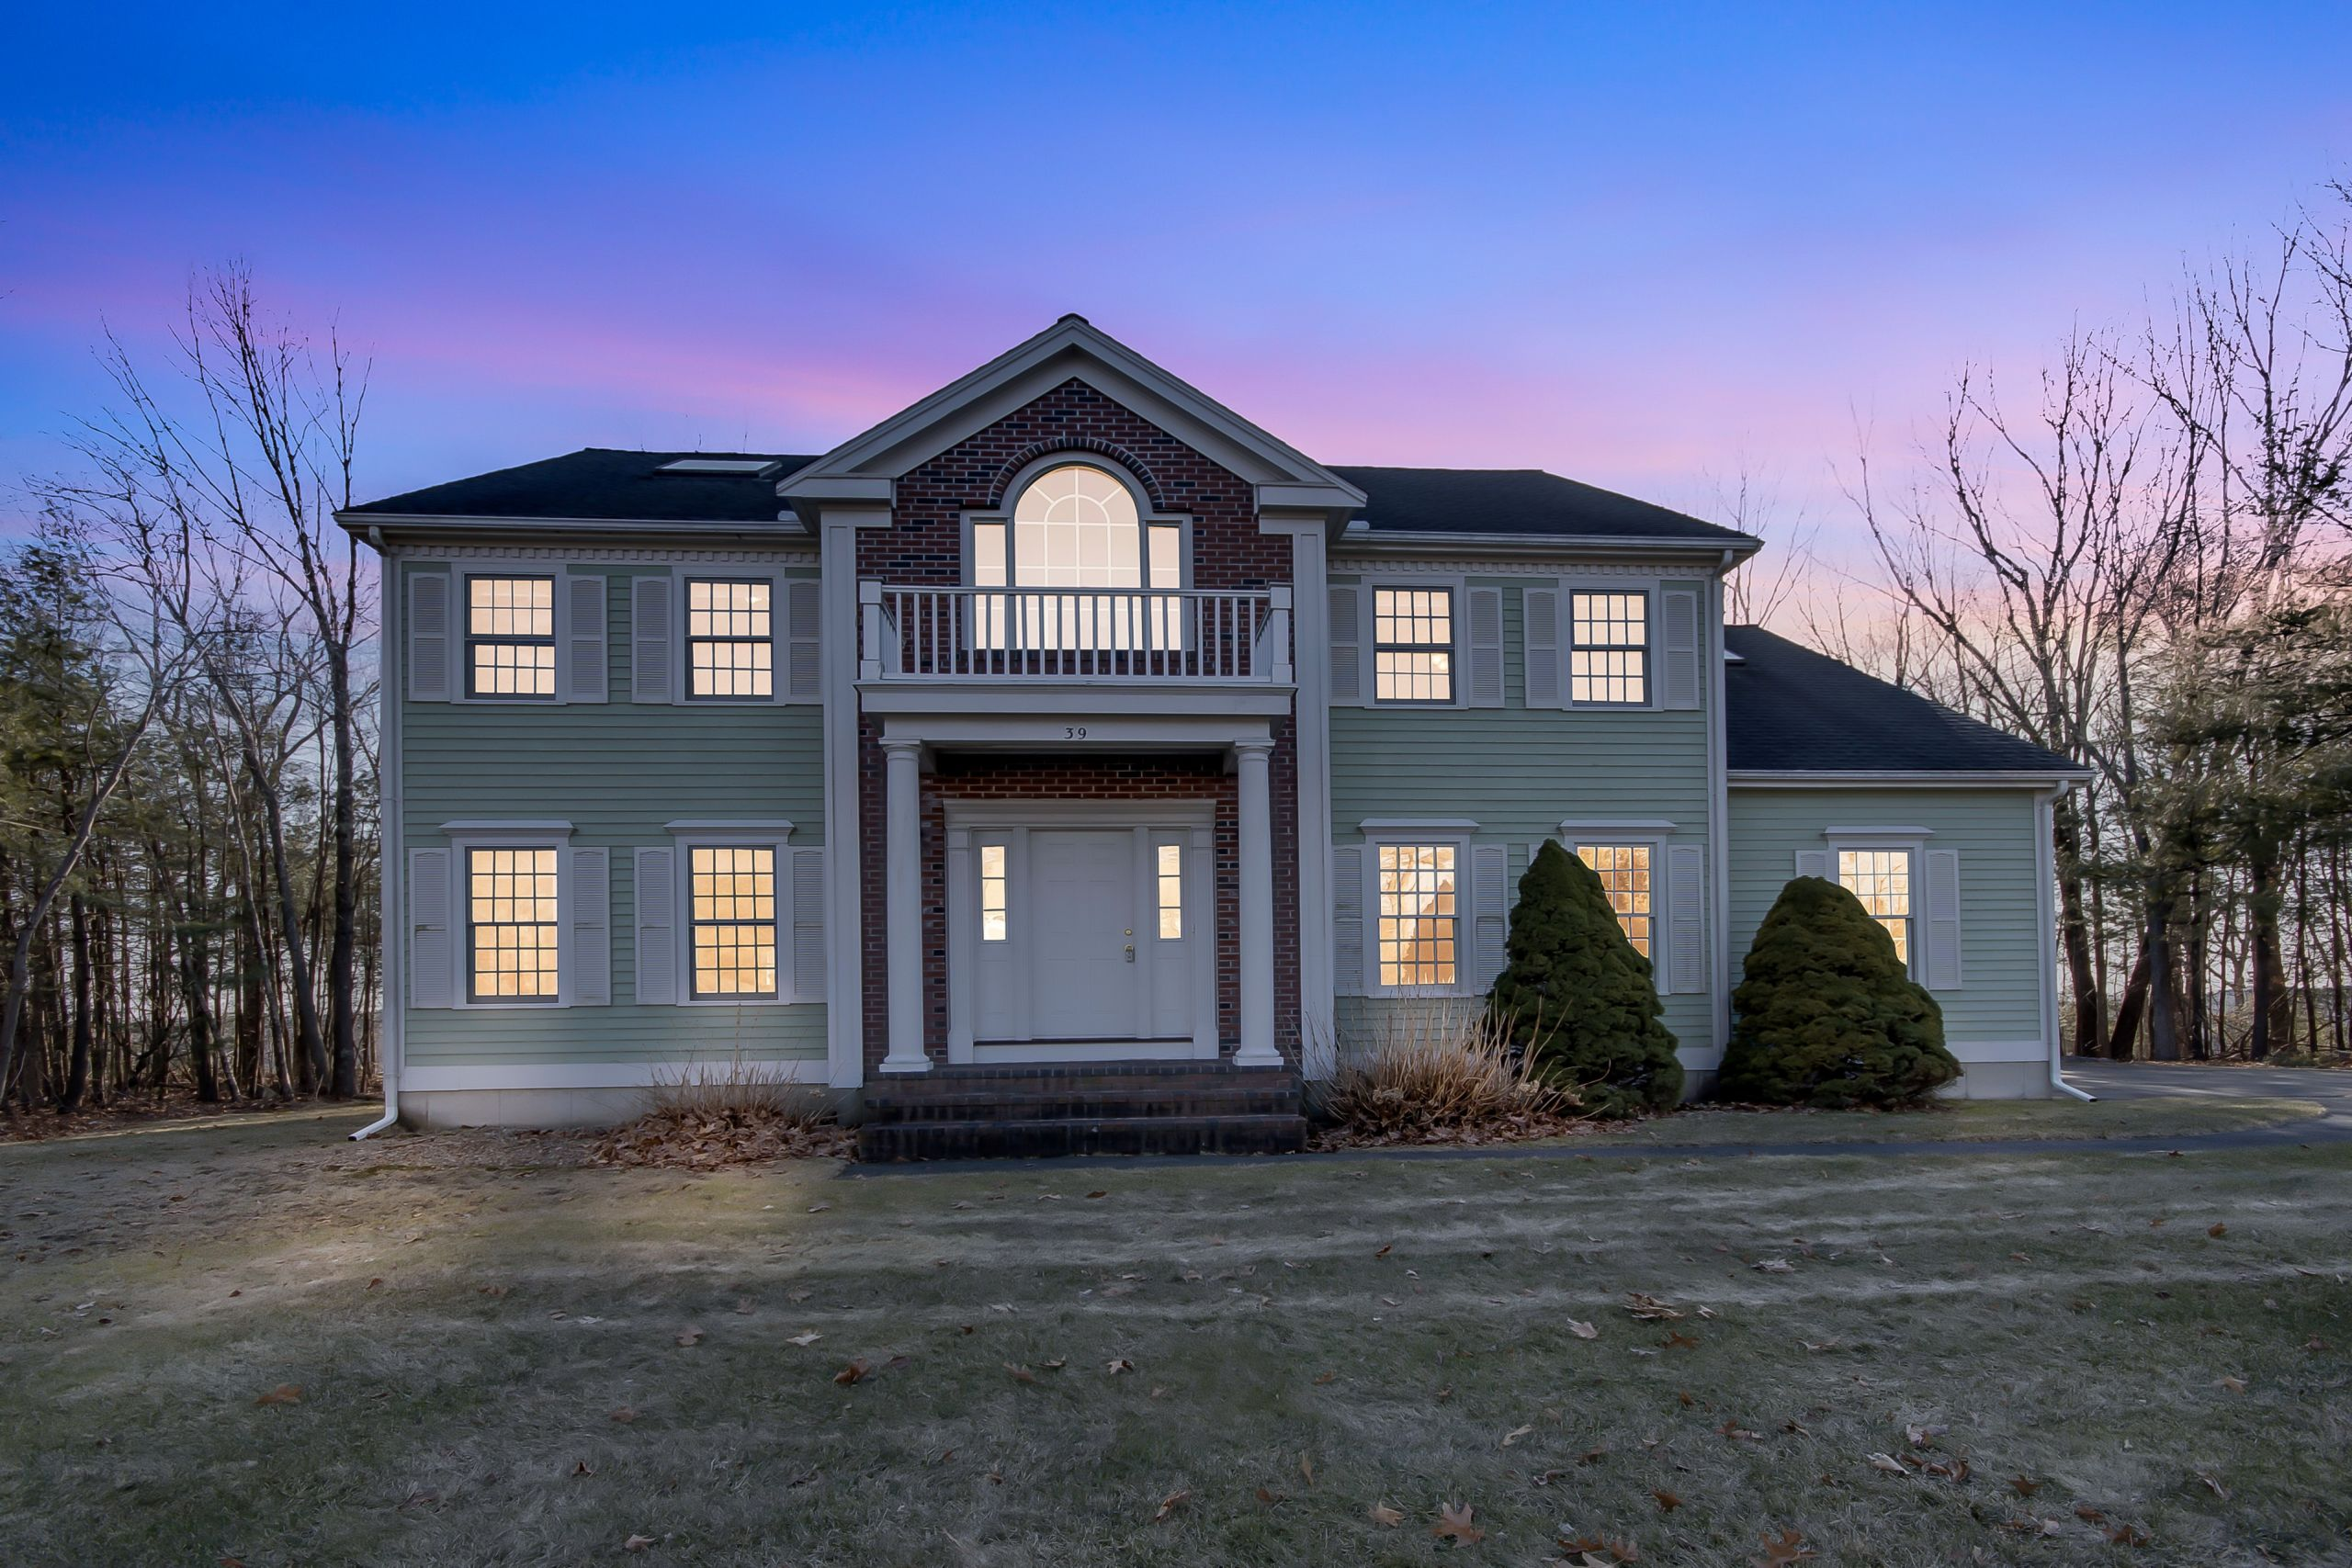 Spectacular Hitchin' Post Greens Home in Westford